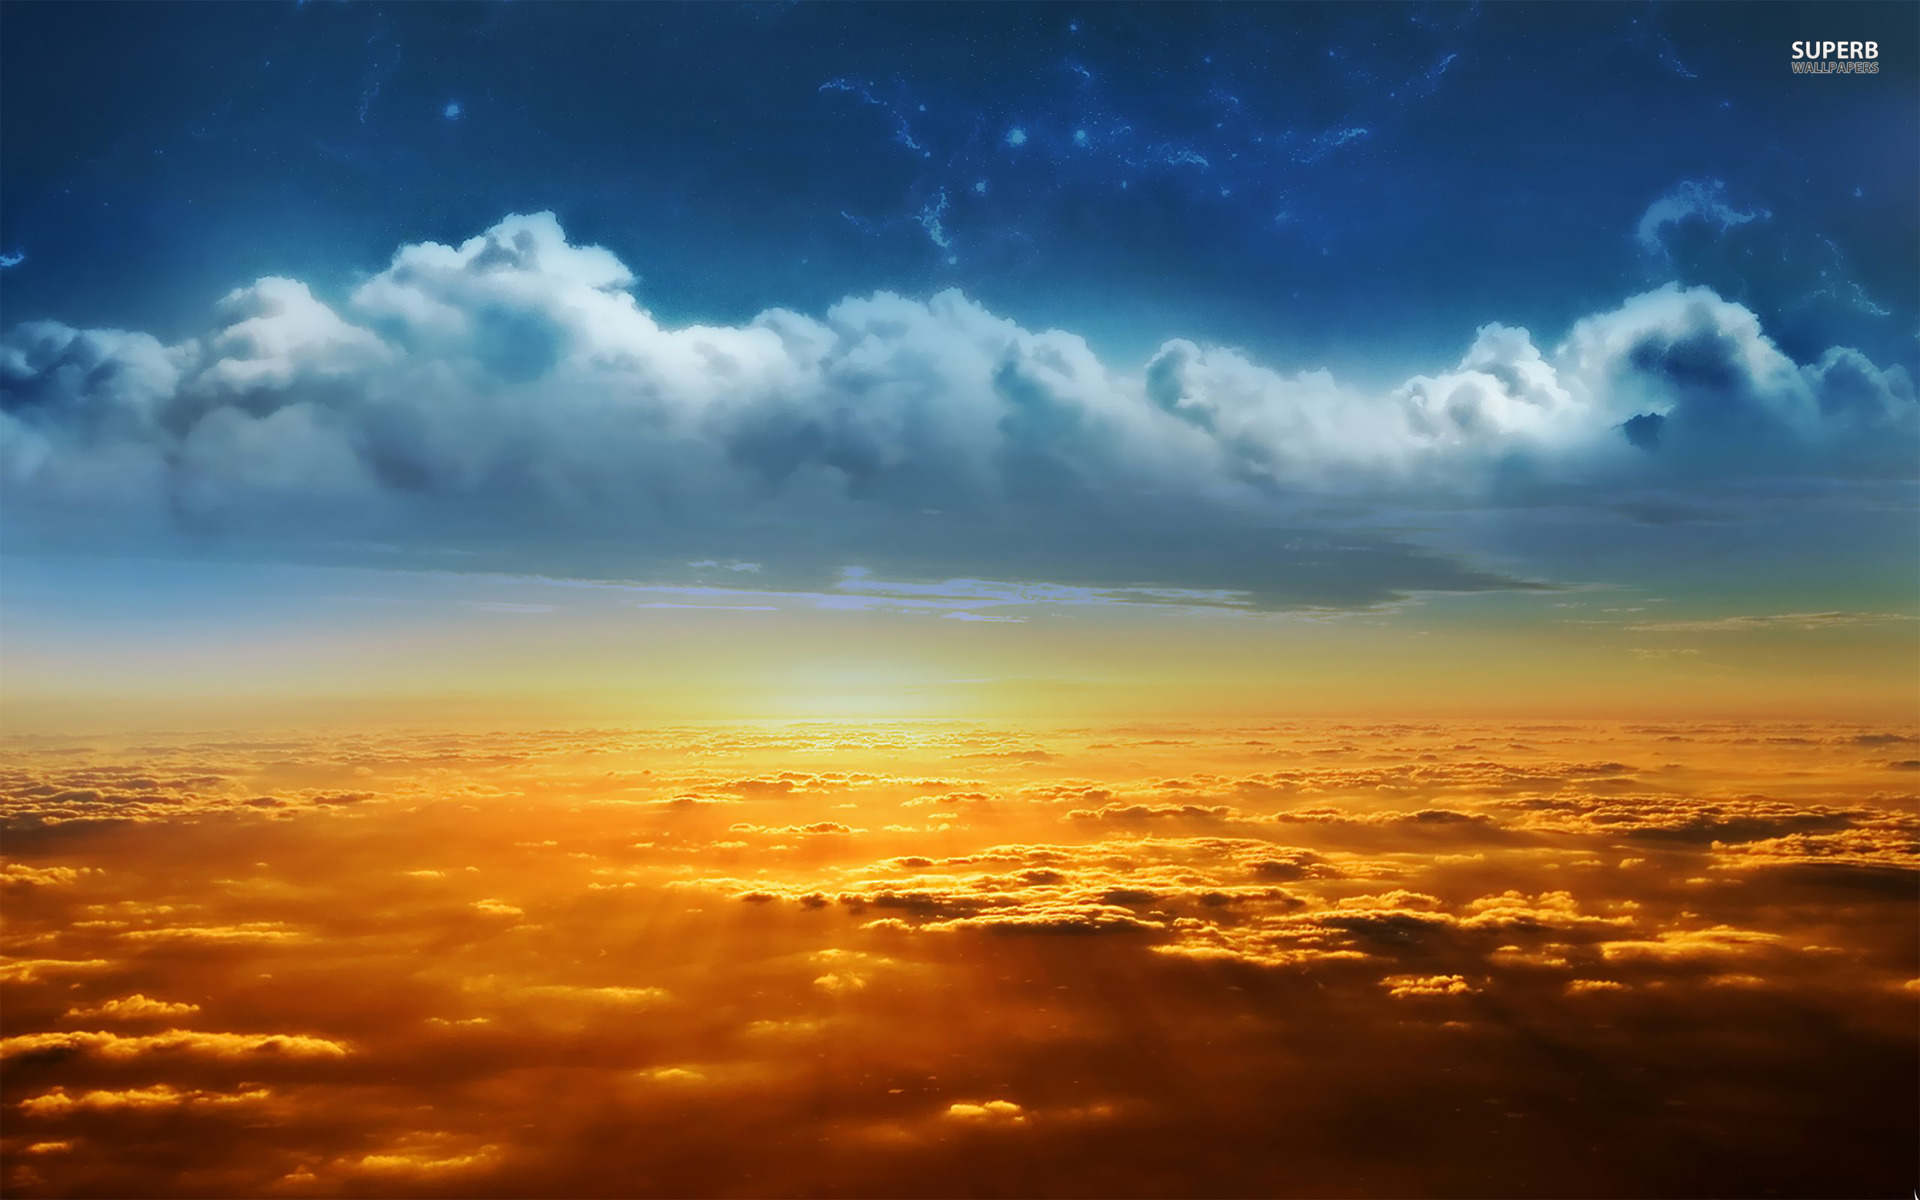 golden sunrise over clouds wallpapers